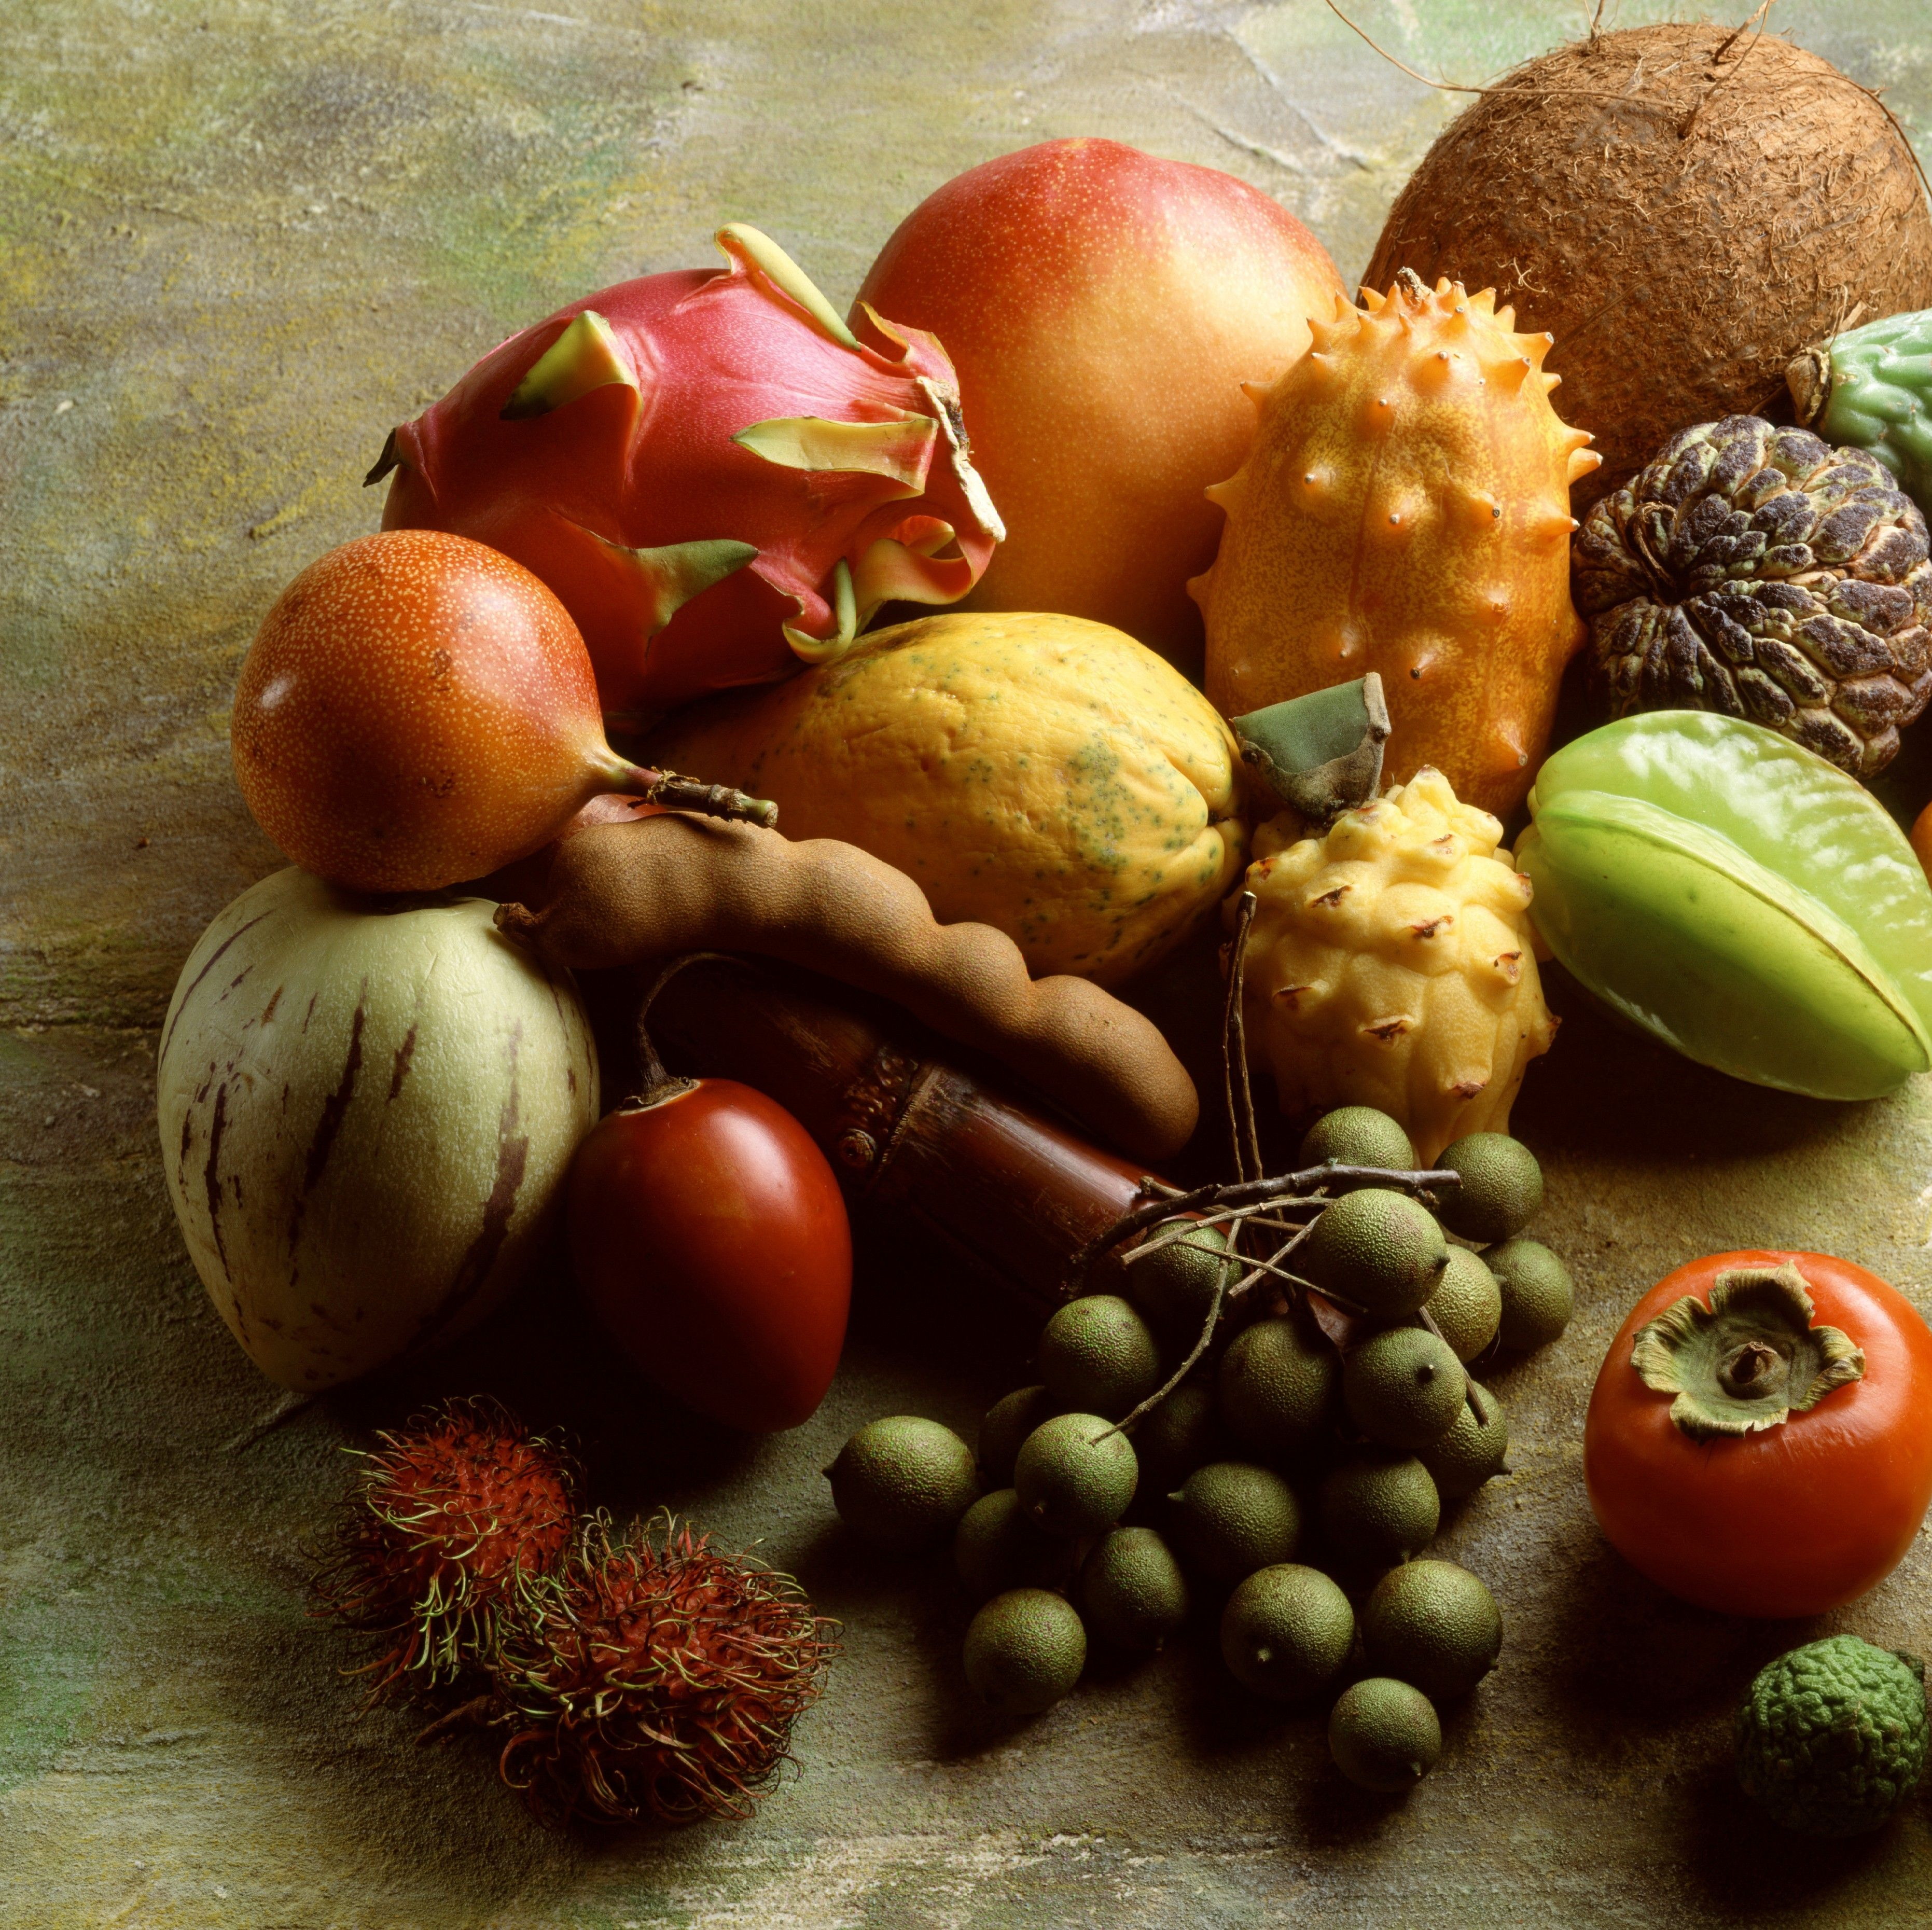 Daily Expert: 7 Healthy Fruits and Vegetables You're Not Eating That Are Actually Delicious